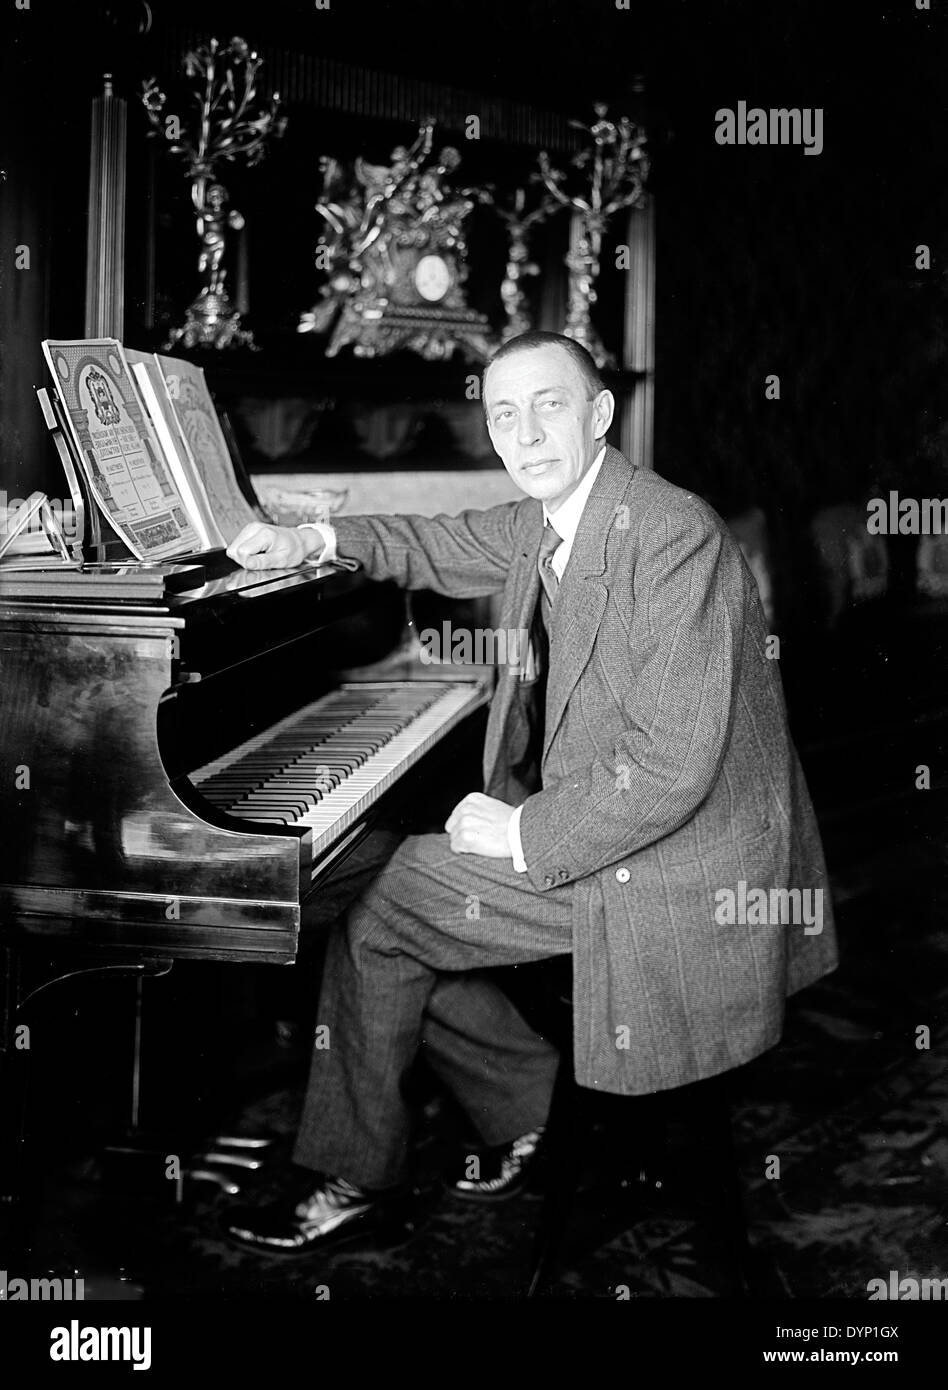 SERGEI RACHMANINOFF (1873-1943) Russian composer and pianist - Stock Image